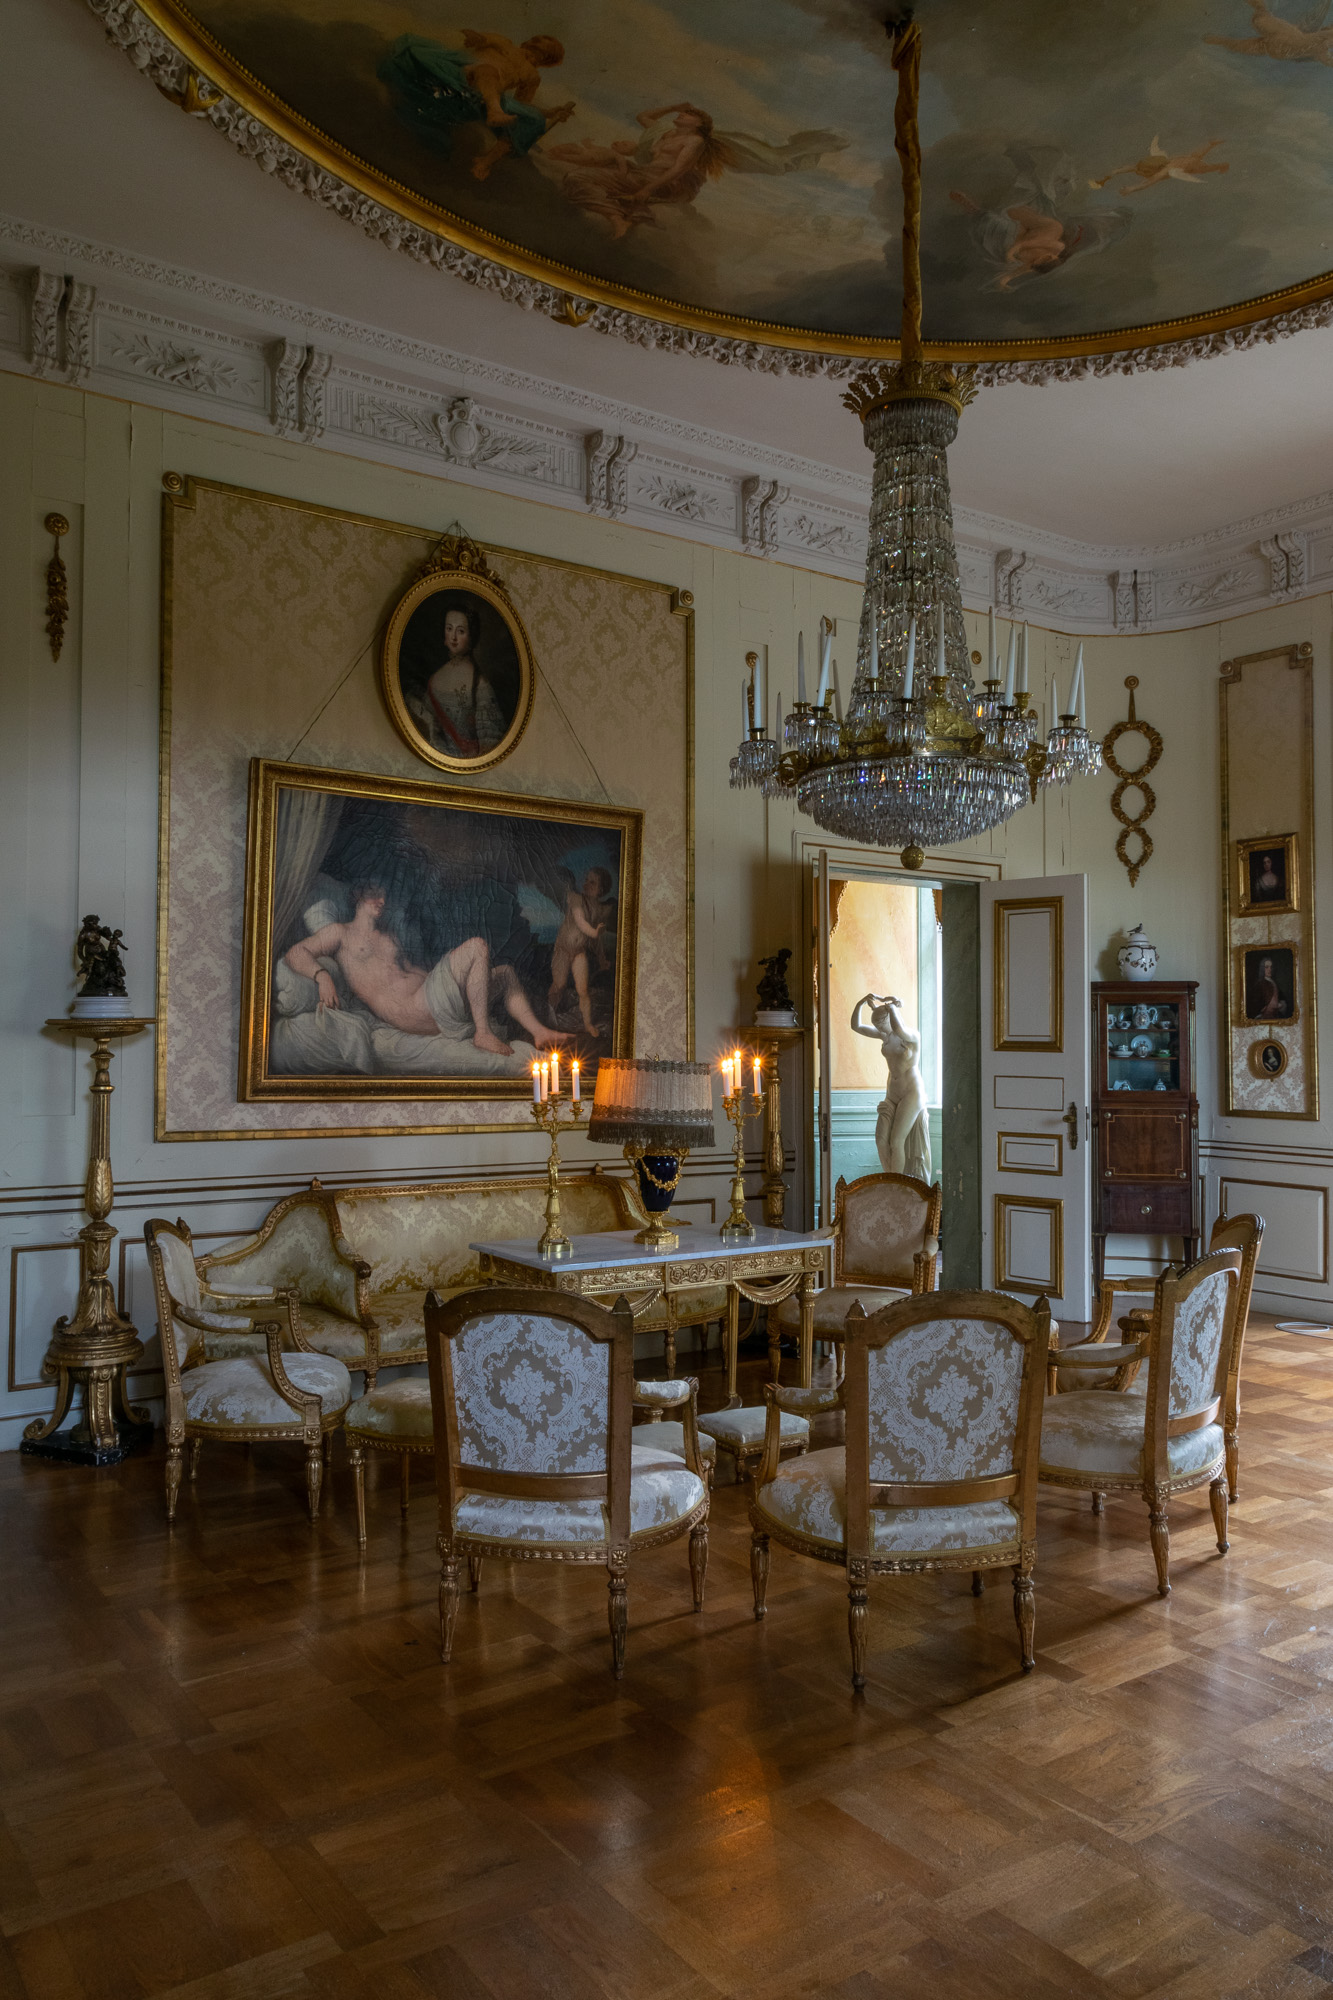 The Gustavian Yellow Saloon is the first room in the 18th Century furnished main floor. Below is the gallery with stucco ceiling from the time of Carl Gustaf Oxenstierna, Baroque chandeliers and a painted ceiling by Ehrenstrahl.